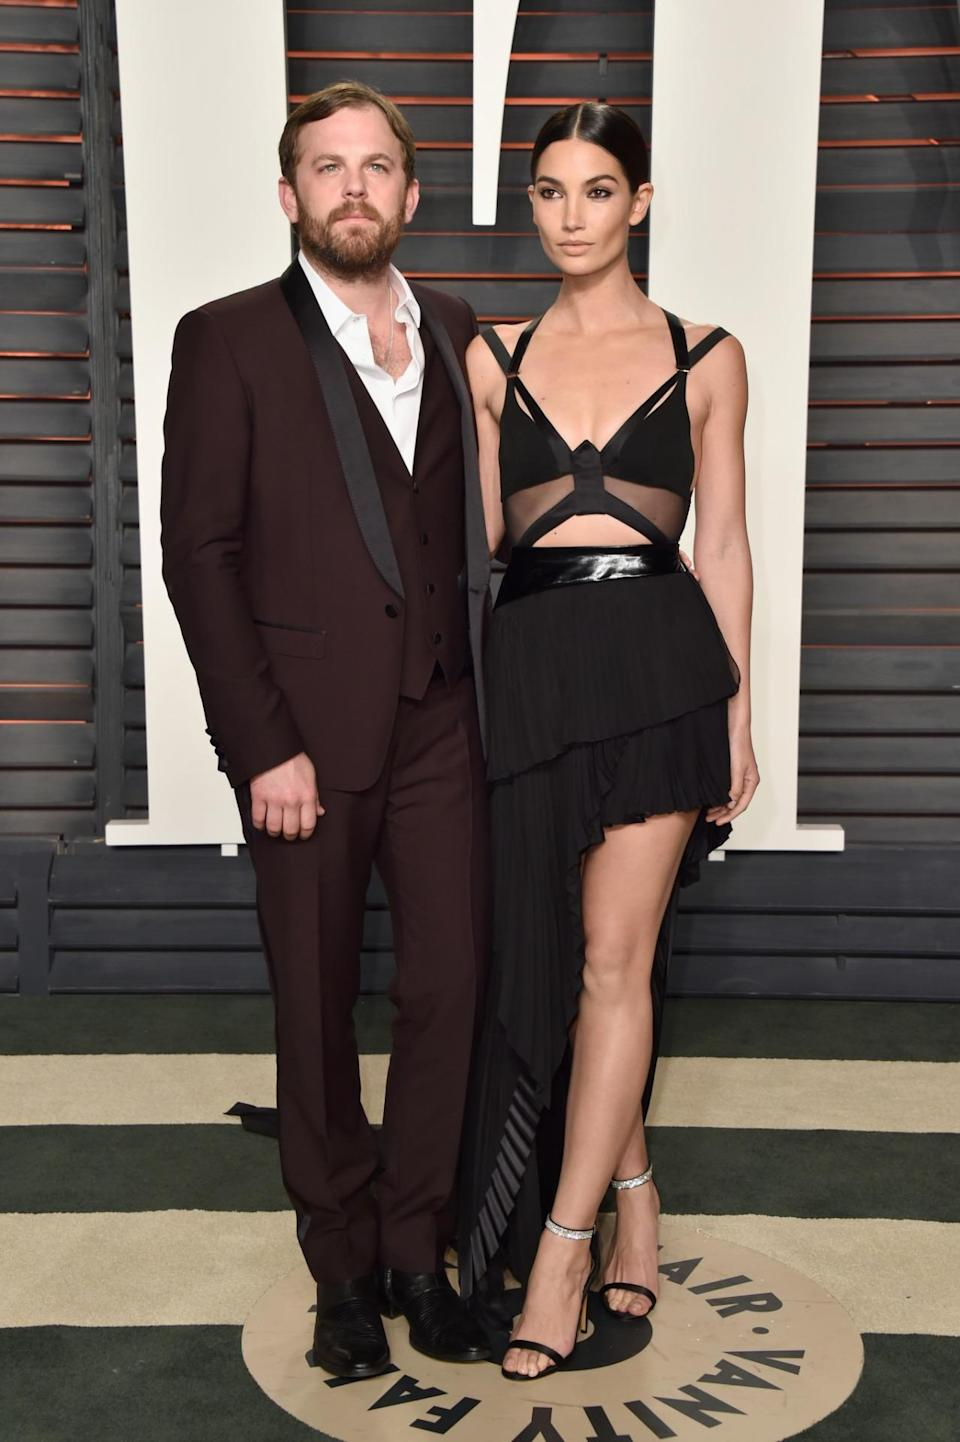 <p>The lead singer of Kings of Leon first caught the eye of Lily Aldridge in 2007. Four years later, they were married and now have a daughter who goes by the adorable name of Dixie Pearl. <i>[Photo: Getty]</i> </p>